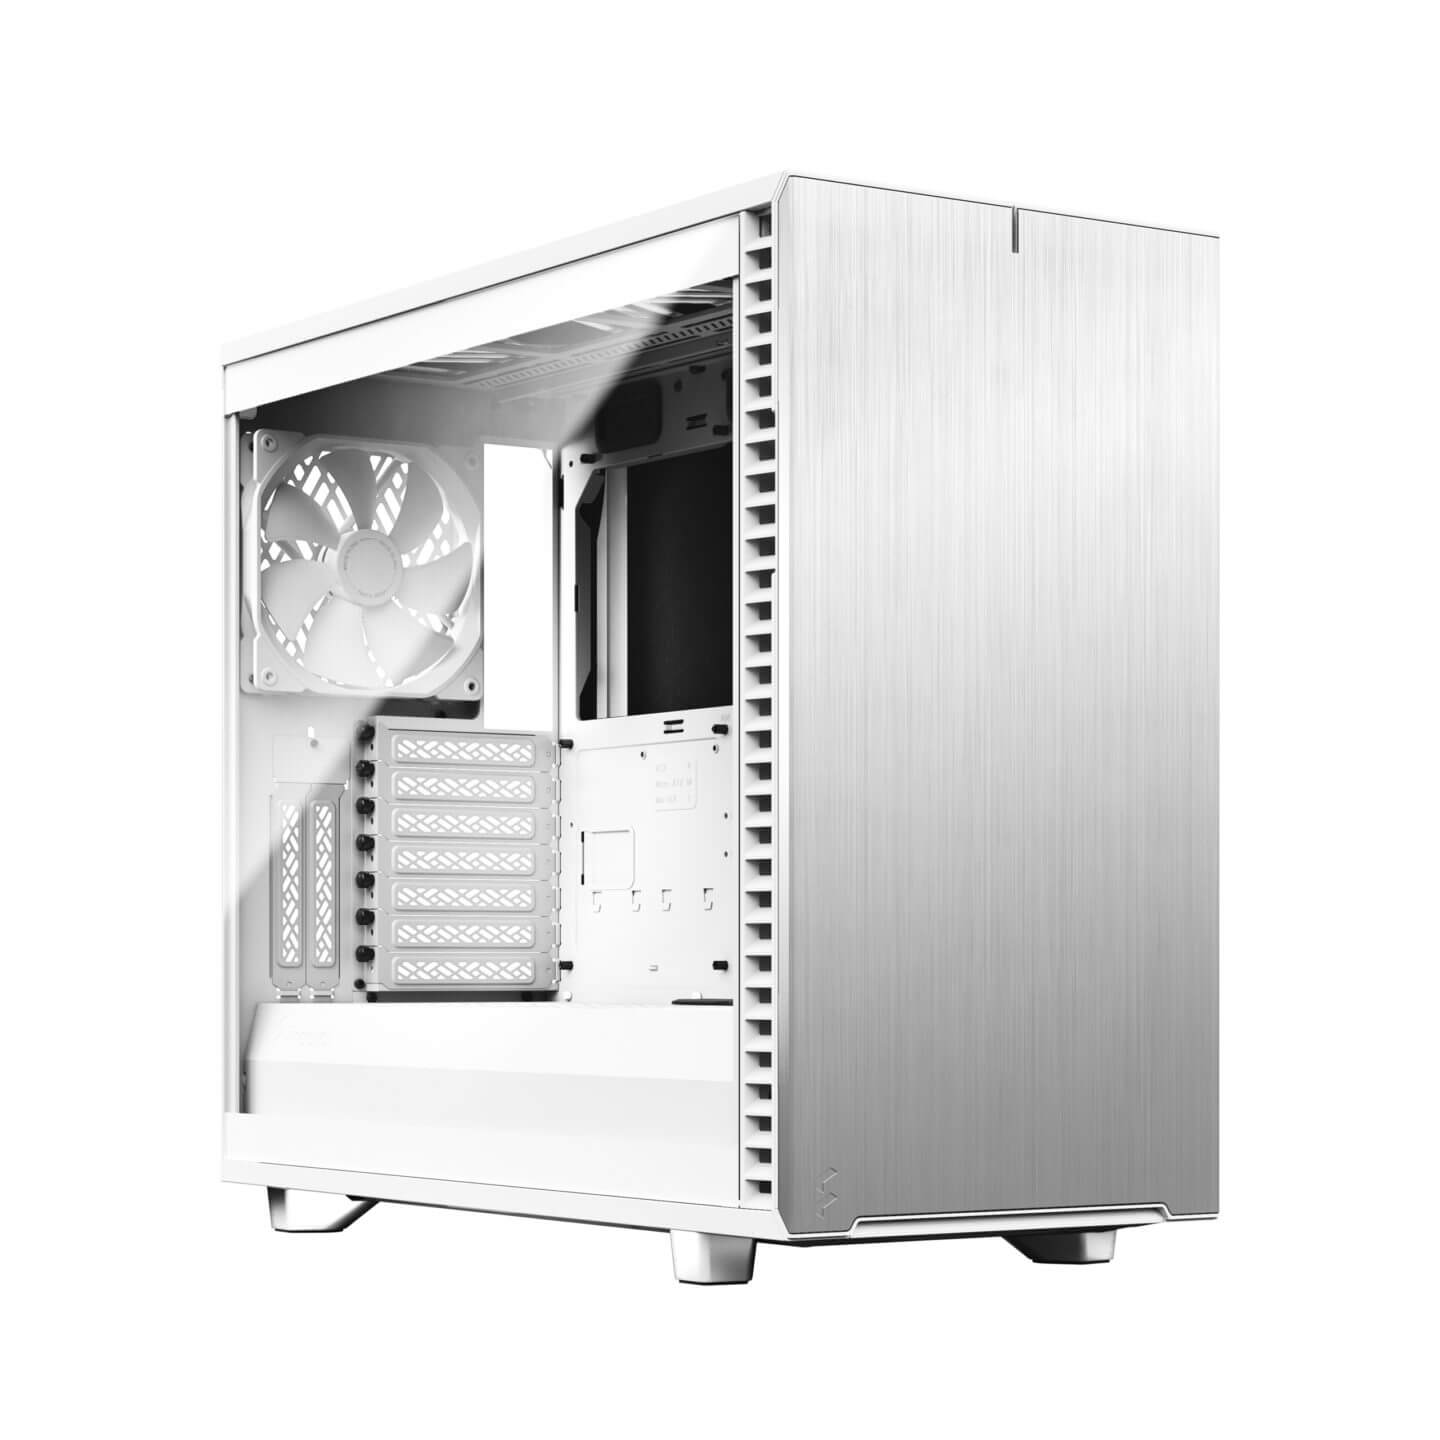 Fractal Design Define 7 Clear Tempered Glass PCケースのイメージ写真